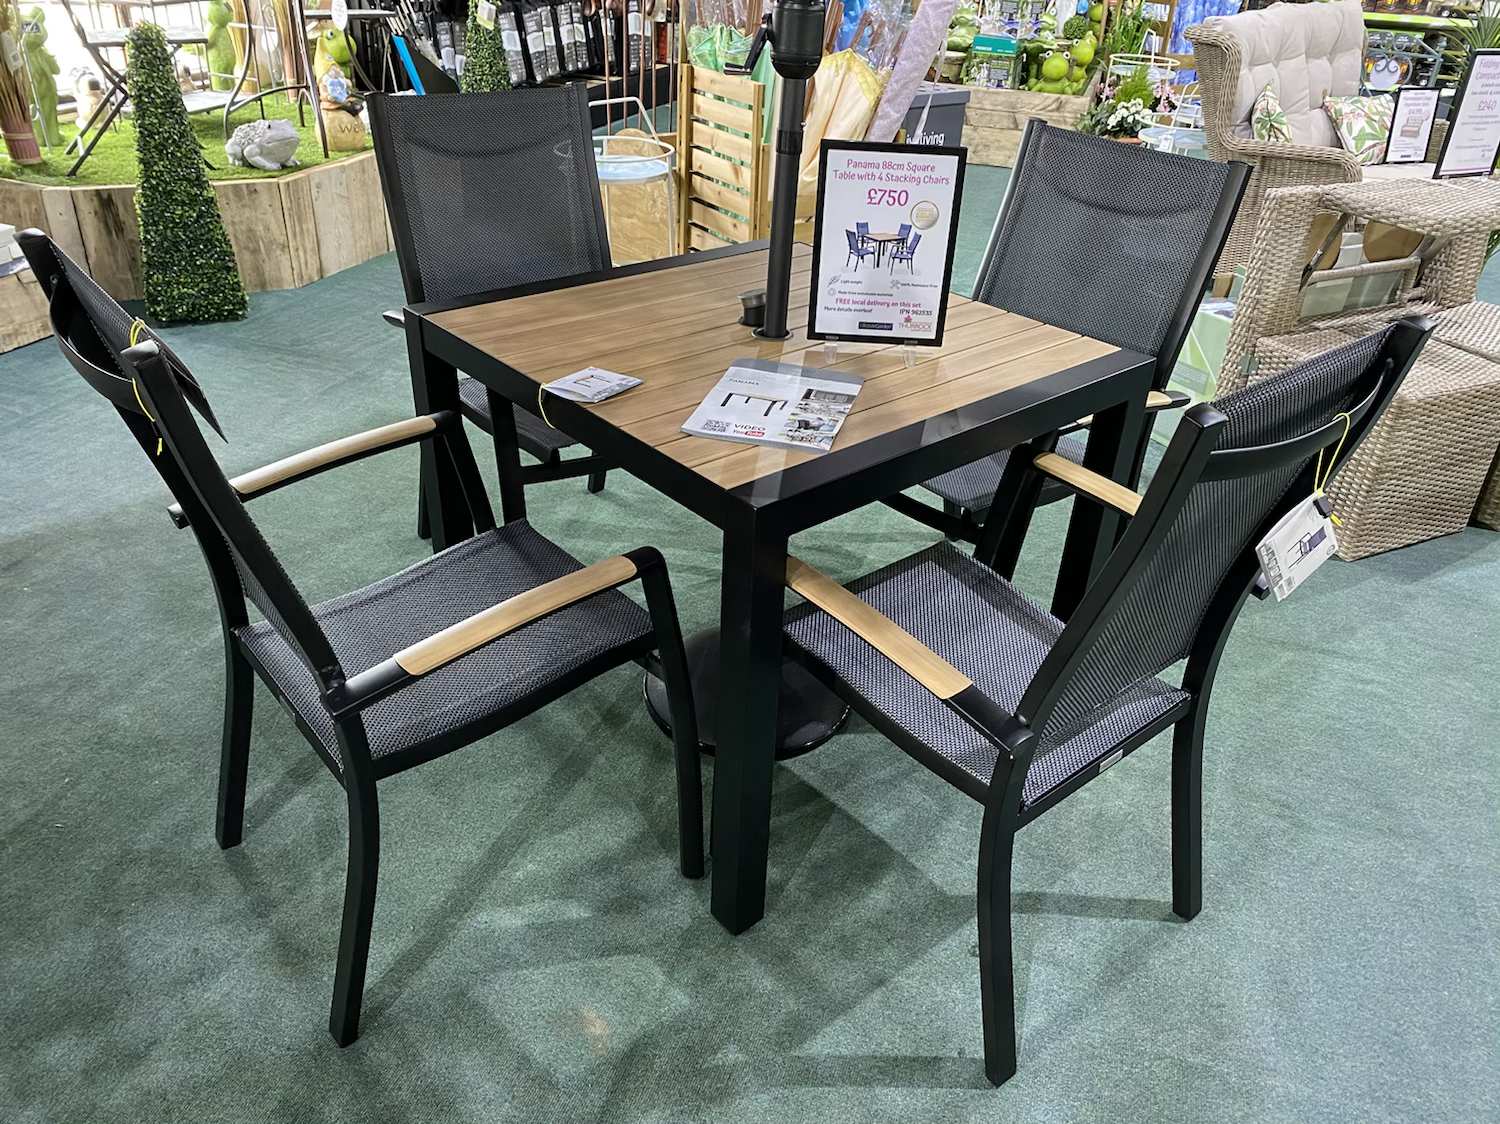 Panama 88cm Square Table with 4 Stacking Chairs - £750